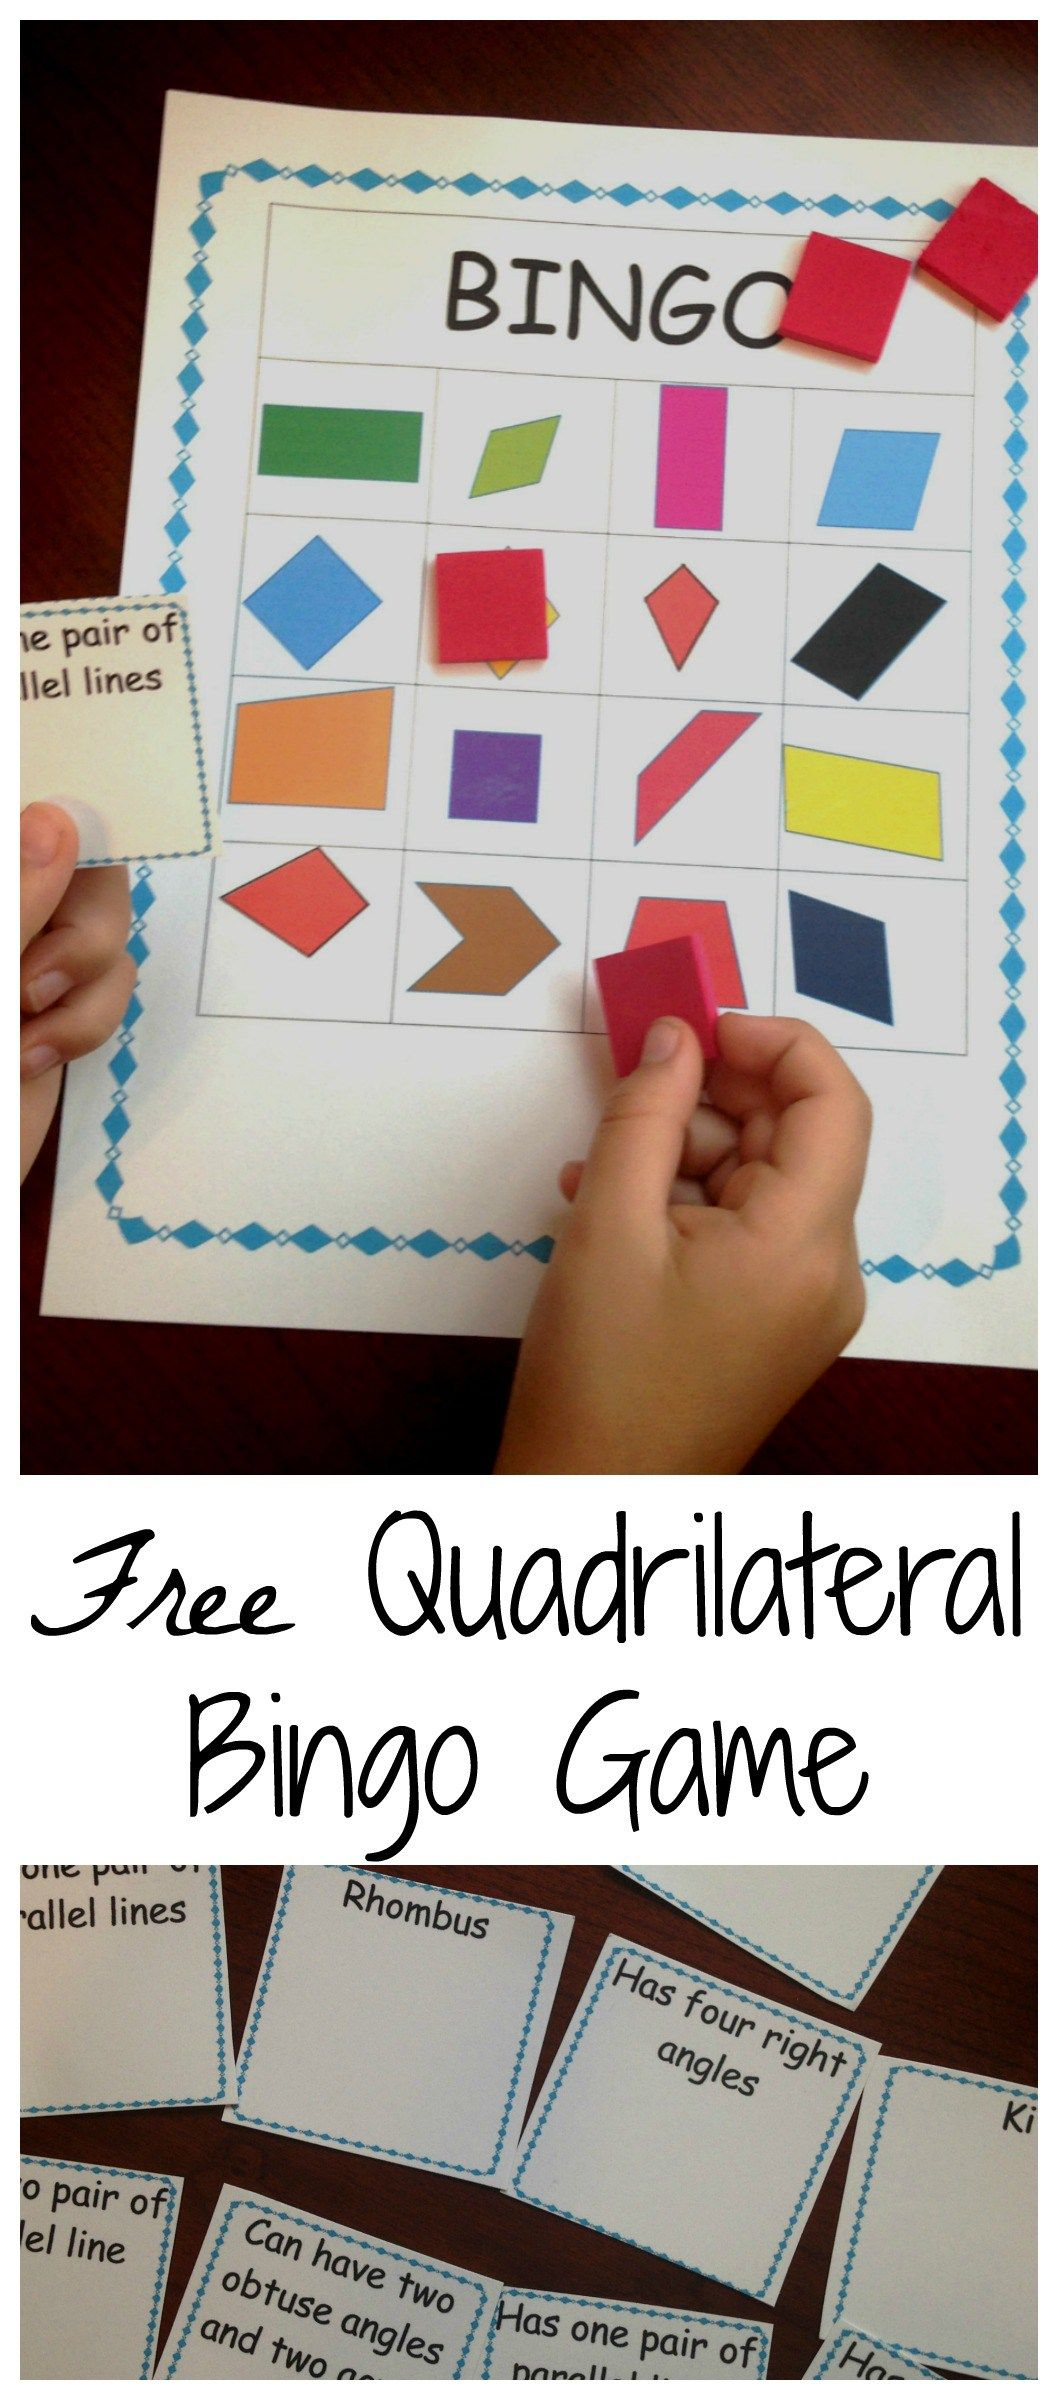 How to Review Classifying Quadrilaterals with Free Game | Gaming ...